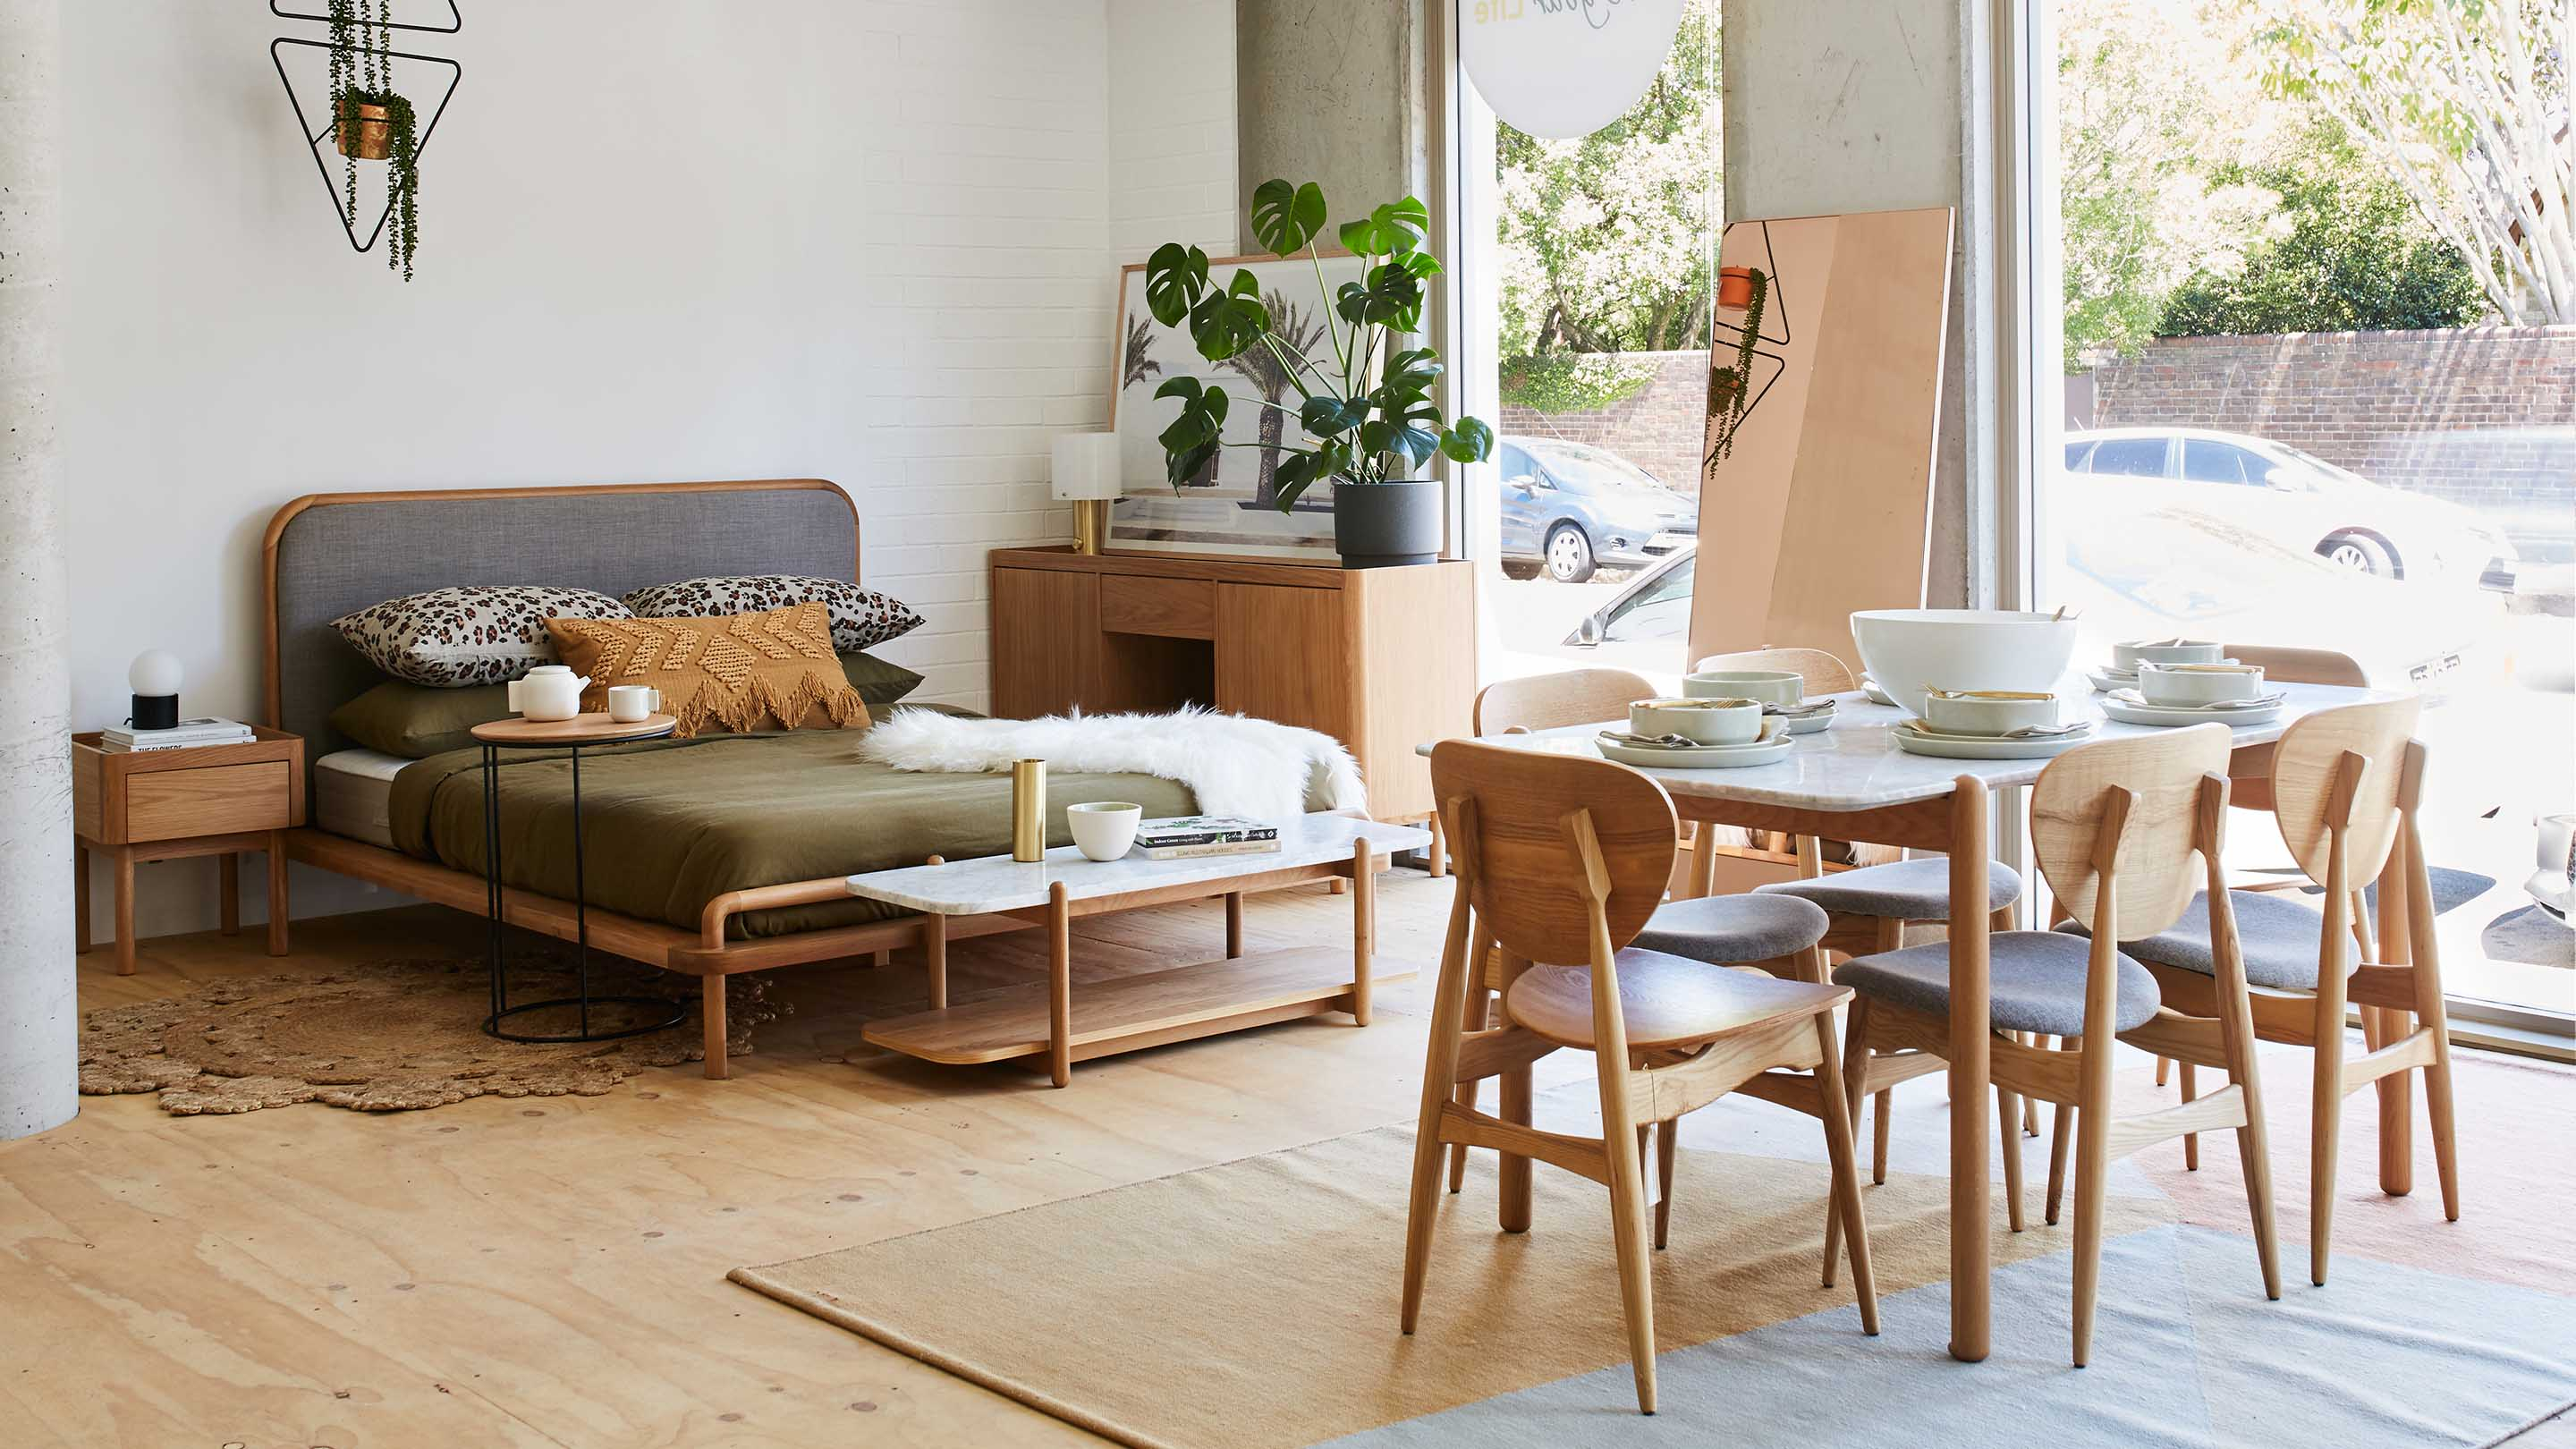 Shop furniture and homewares in our Sydney and Melbourne showrooms.